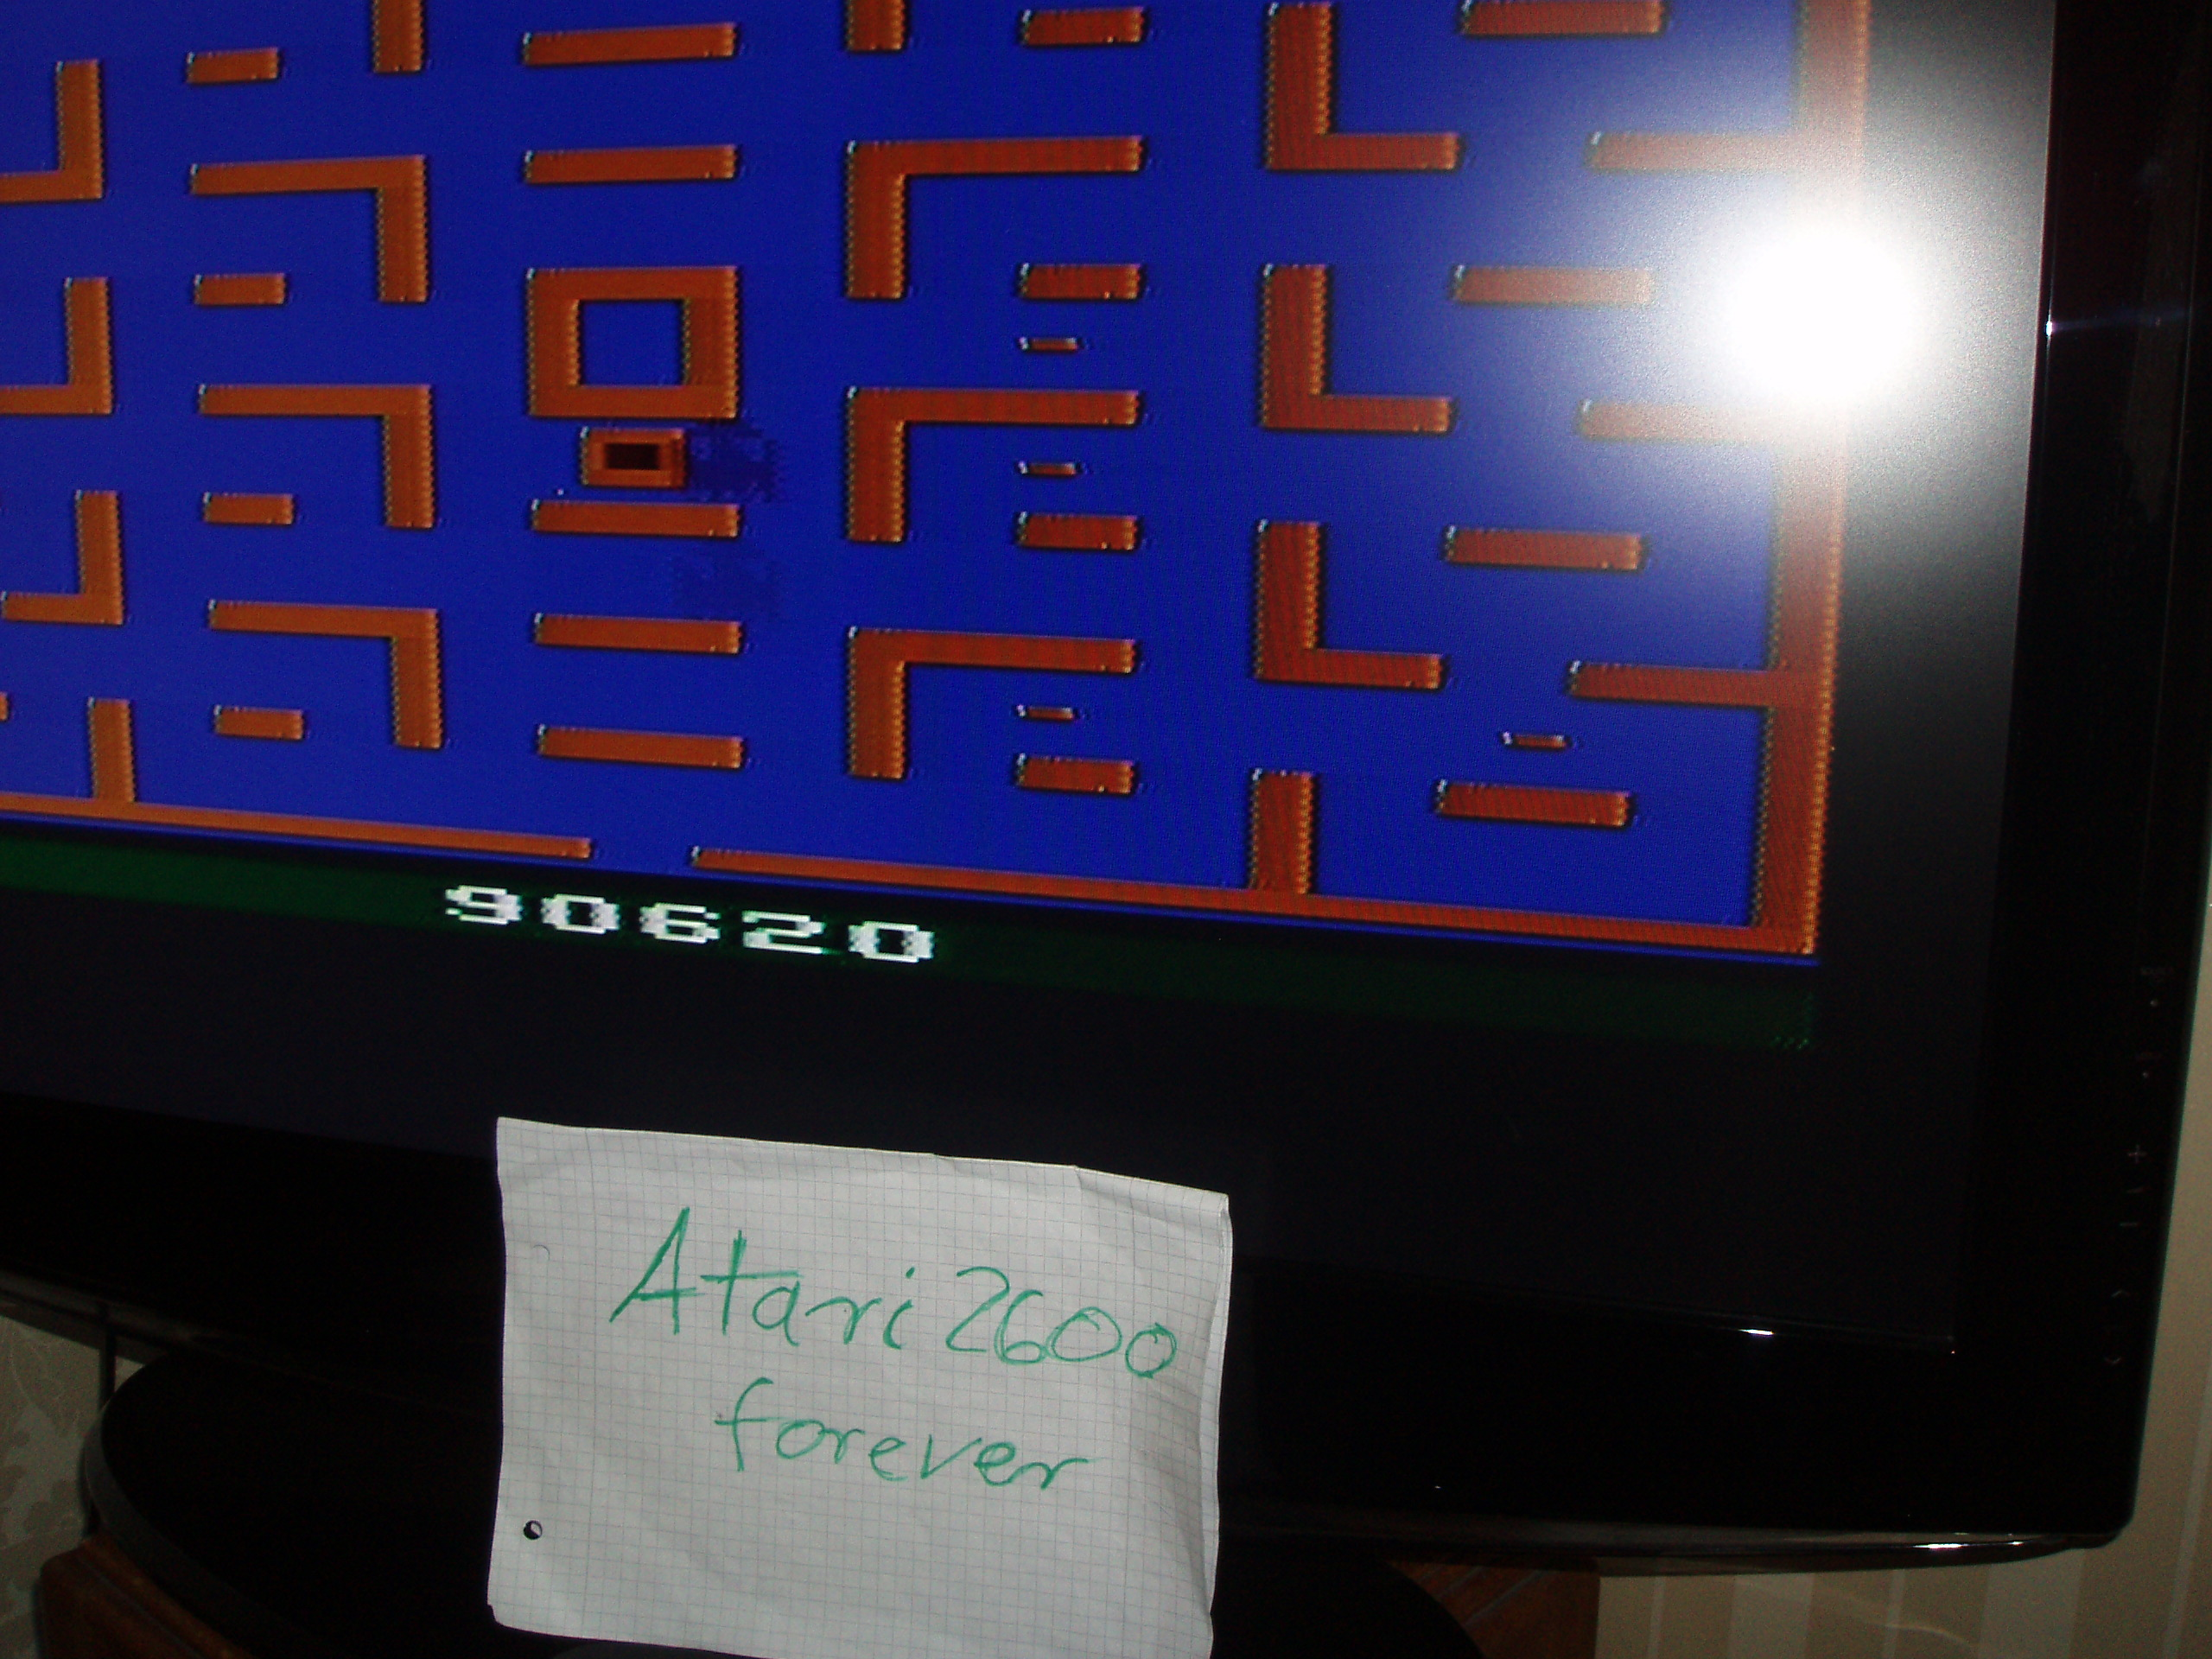 atari2600forever: Pac-Man (Atari 2600 Novice/B) 90,620 points on 2016-04-25 09:59:20